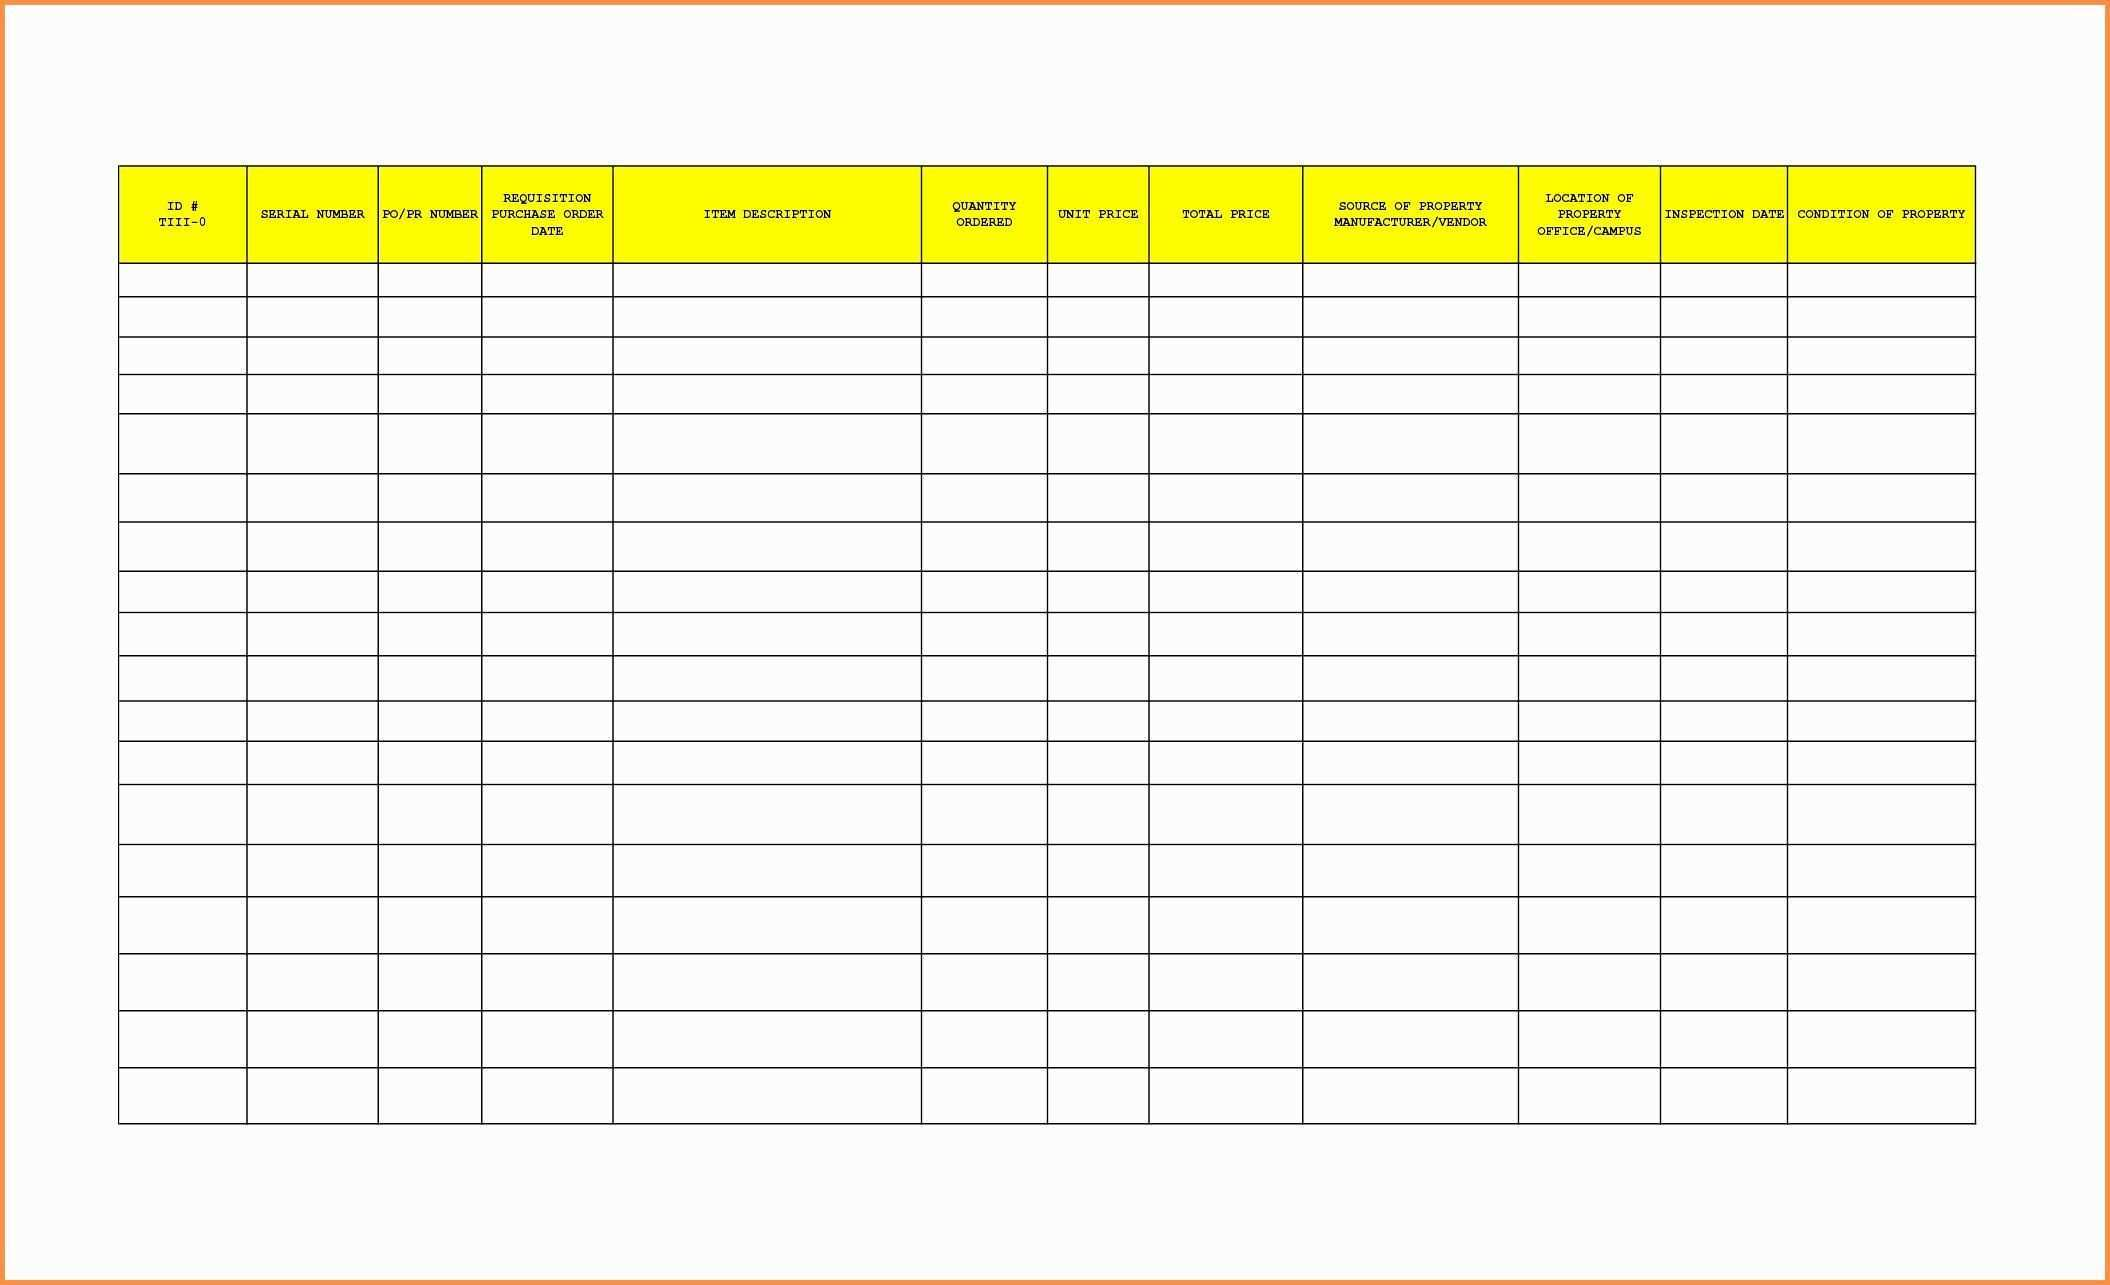 Purchase Order Tracking Excel Sheet Inspirational Purchase Order Tracking Spreadsheet In Purchase Order Tracking Excel Spreadsheet Excel Spreadsheets Templates